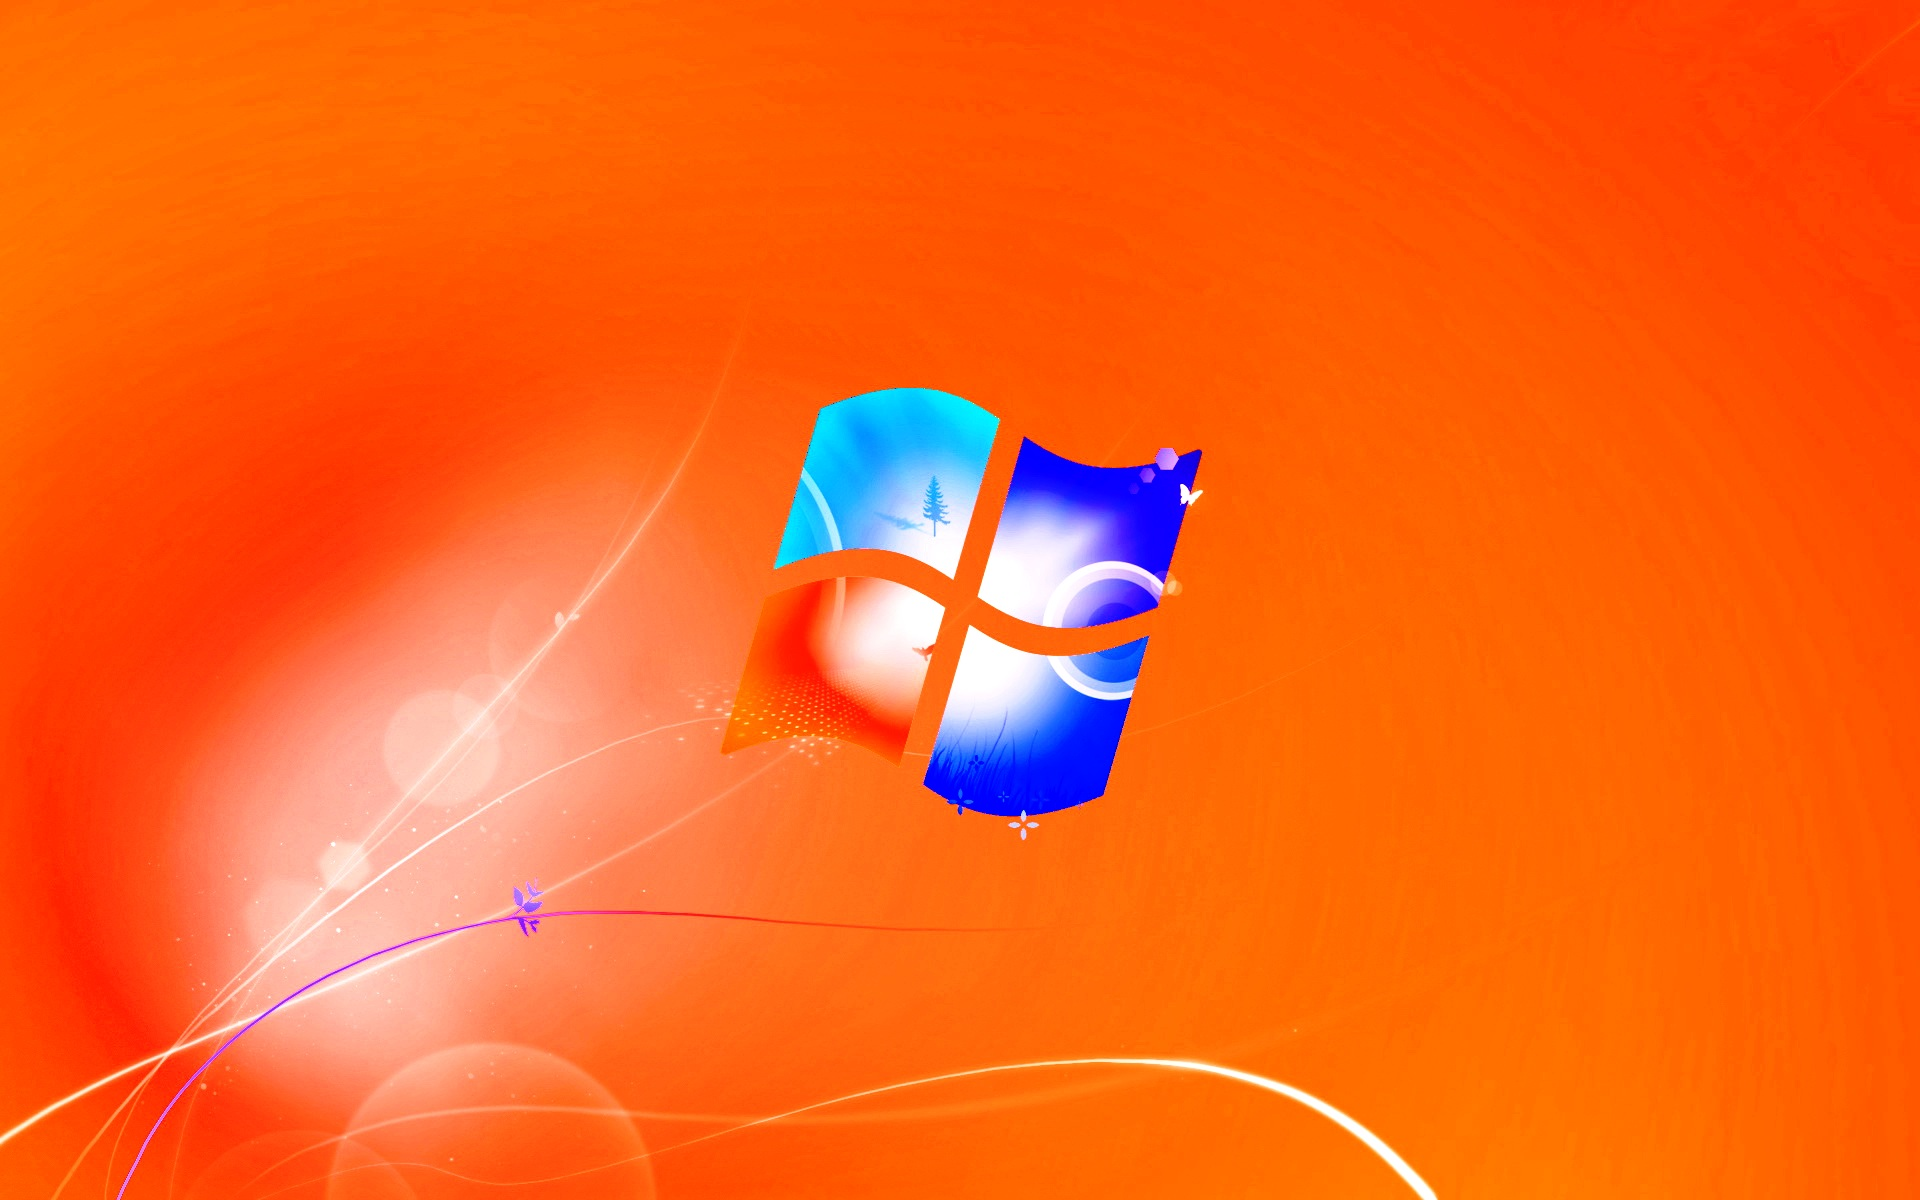 Animated Wallpapers For Desktop Windows Xp Free Download